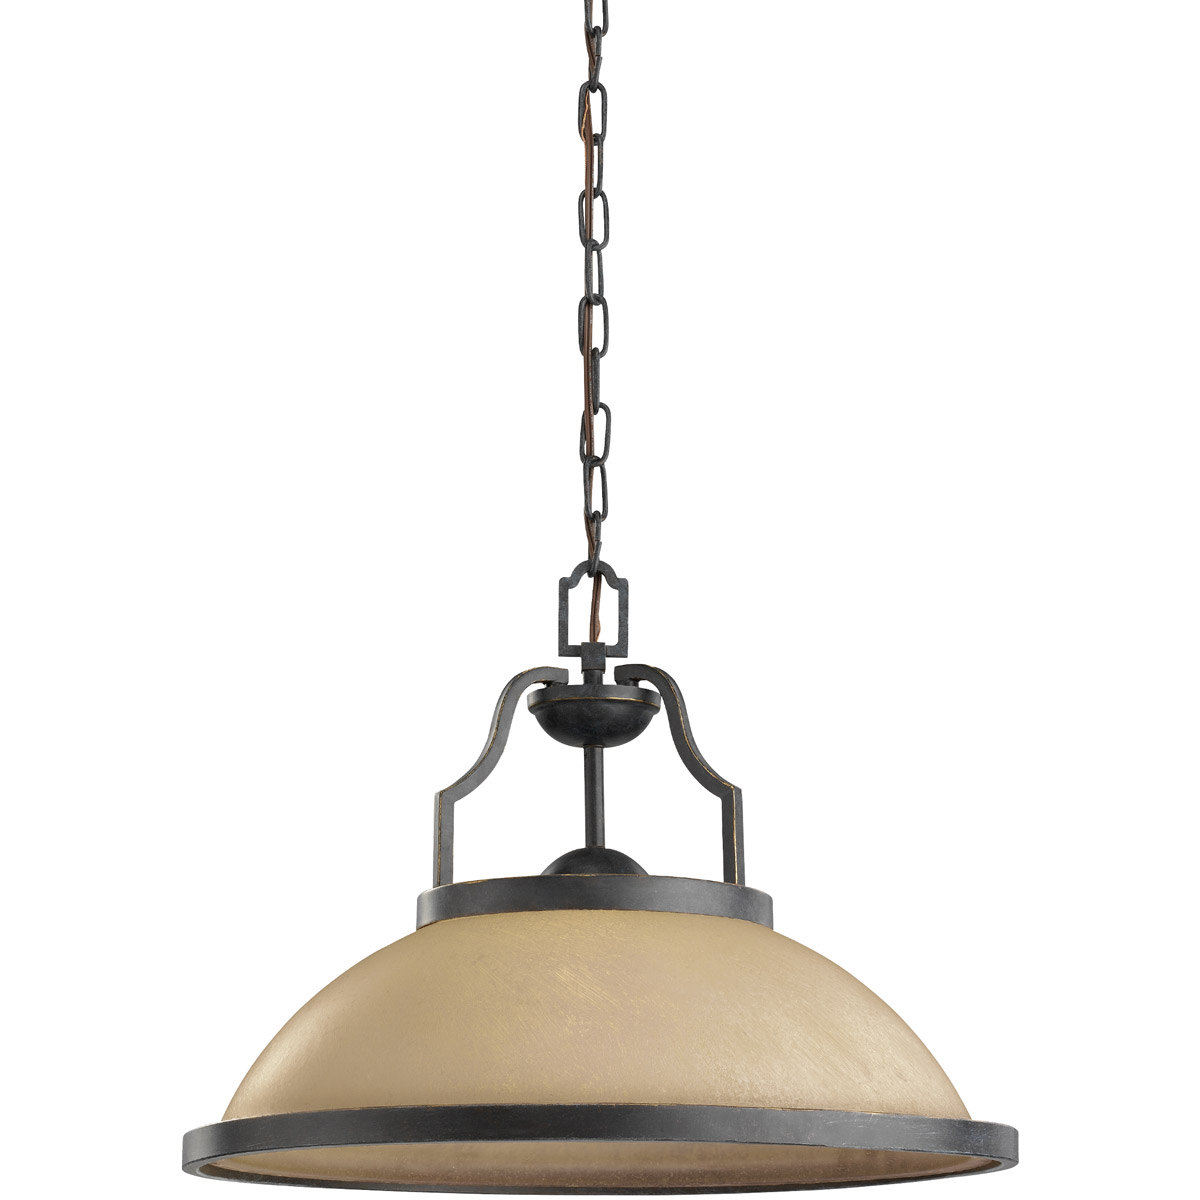 Sea Gull 65520-845 Roslyn 1 Light 19 inch Flemish Bronze Pendant Ceiling Light in Standard photo